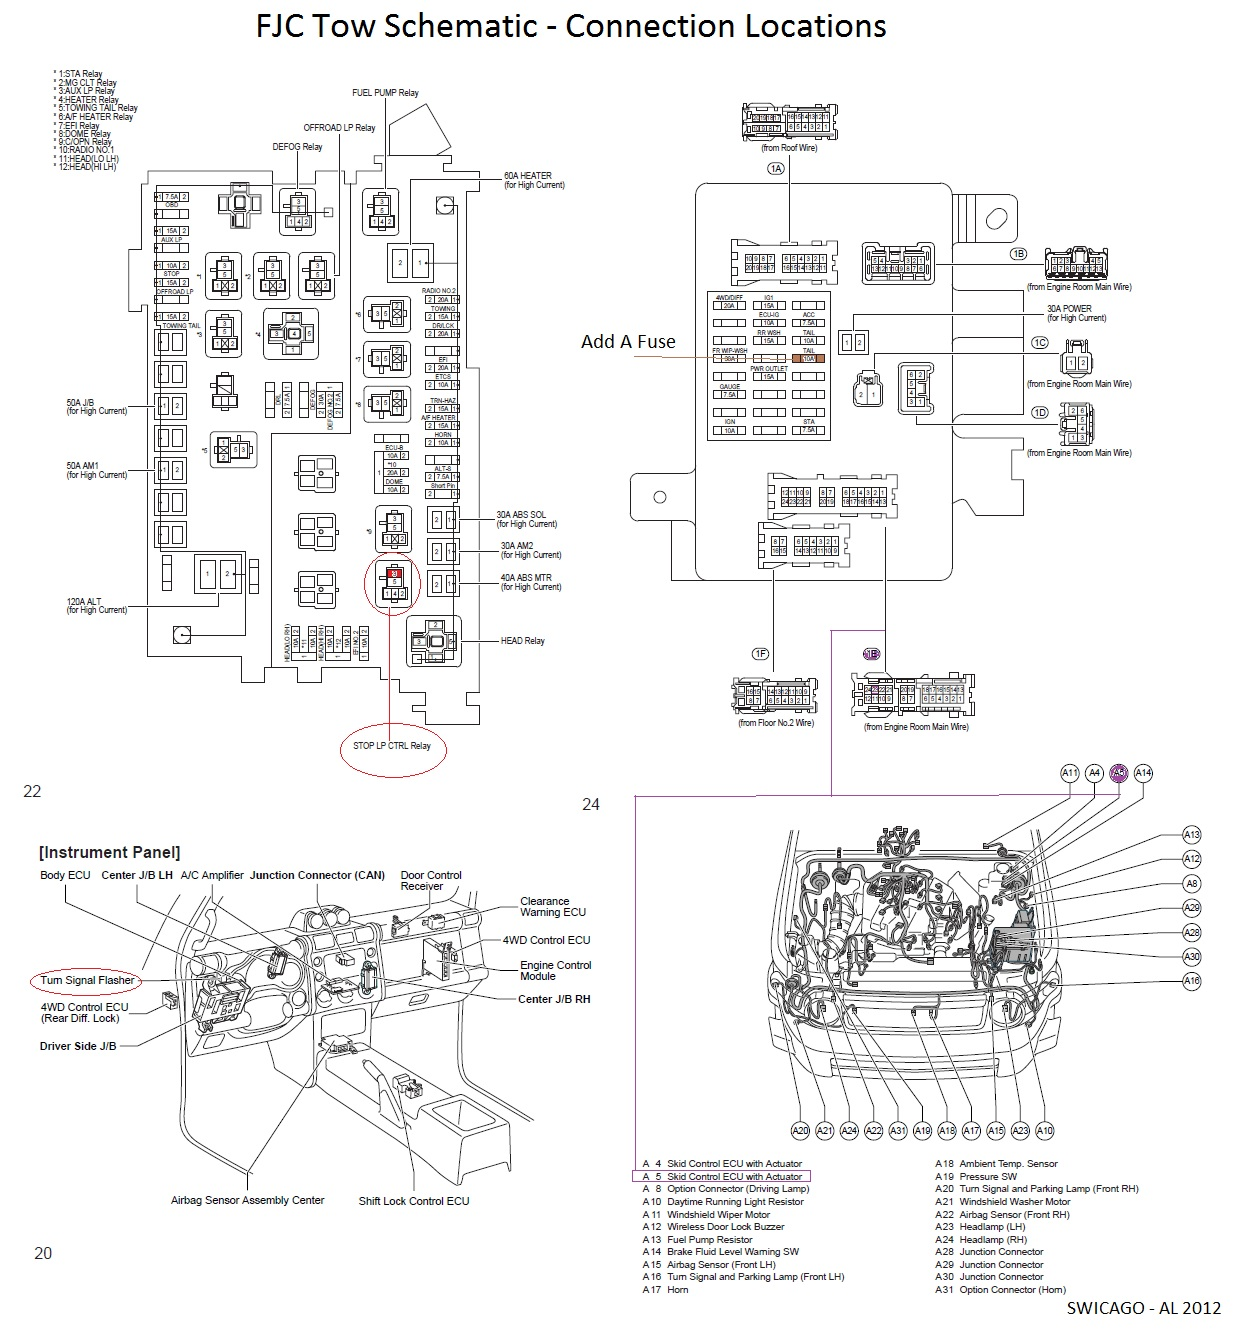 Whelen 9000 Series Wiring Diagram besides Ford Flex Fuse 14 further Gm Ke Light Switch Wiring Diagram as well Hella Rallye 4000 Wiring Diagram also Wireing Harness For A 87 Chevy Ecm. on driving light wiring diagram additionally turn signal switch